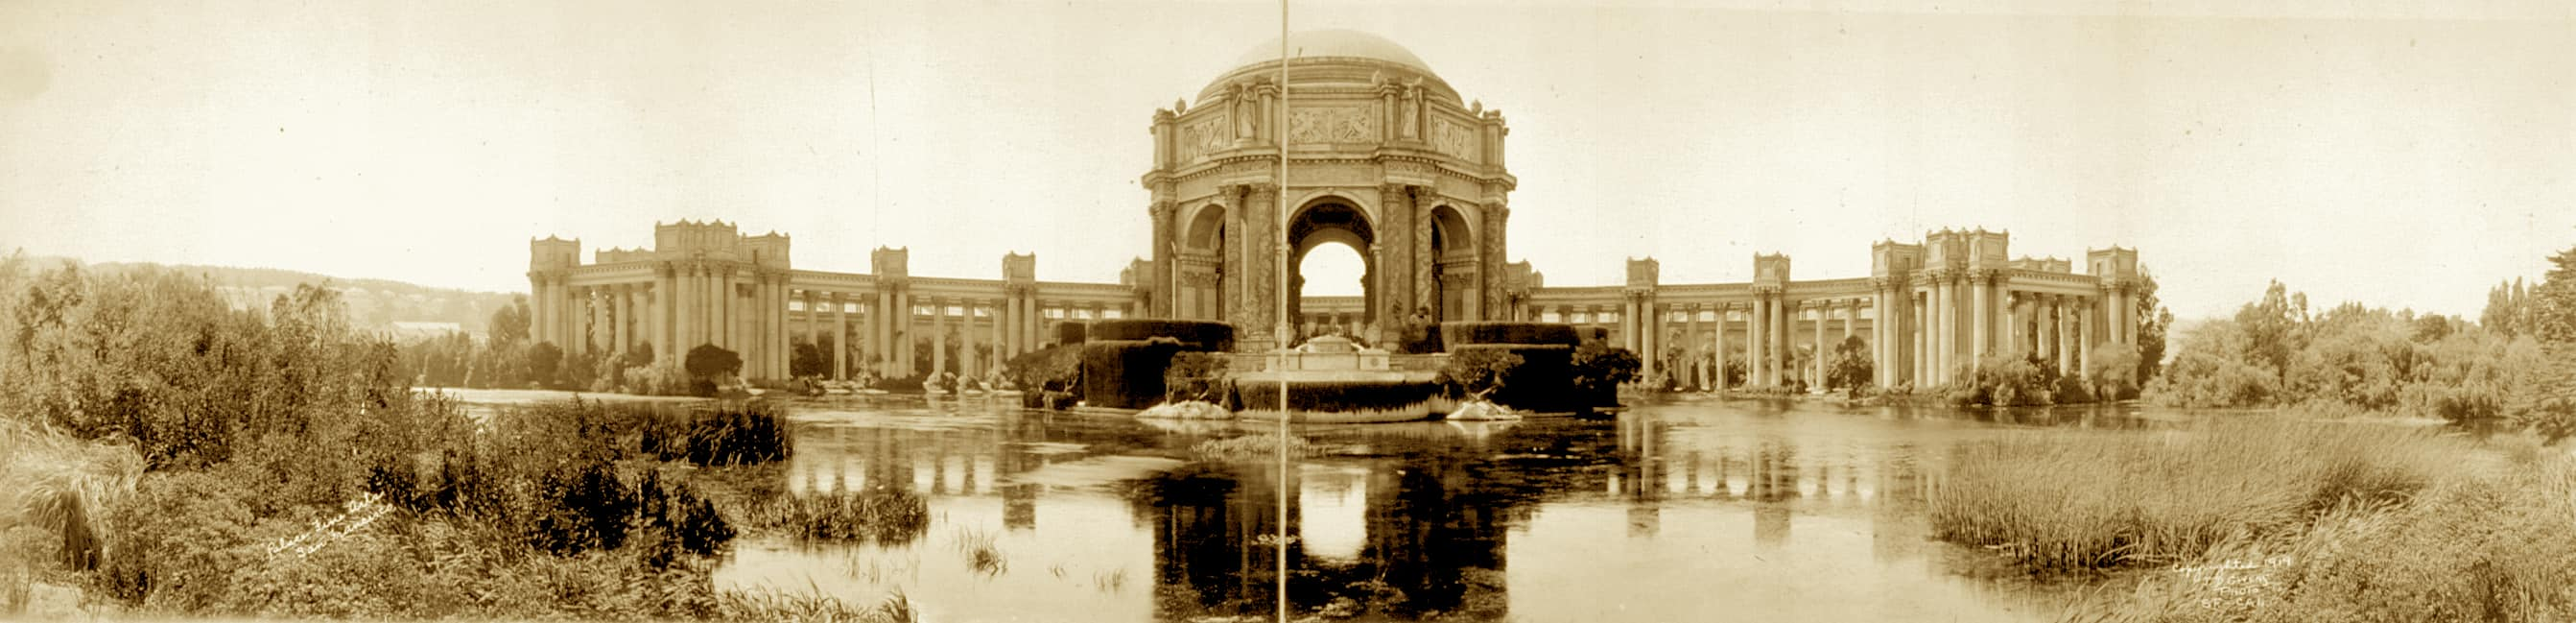 Original Palace of Fine Arts Panorama 1918